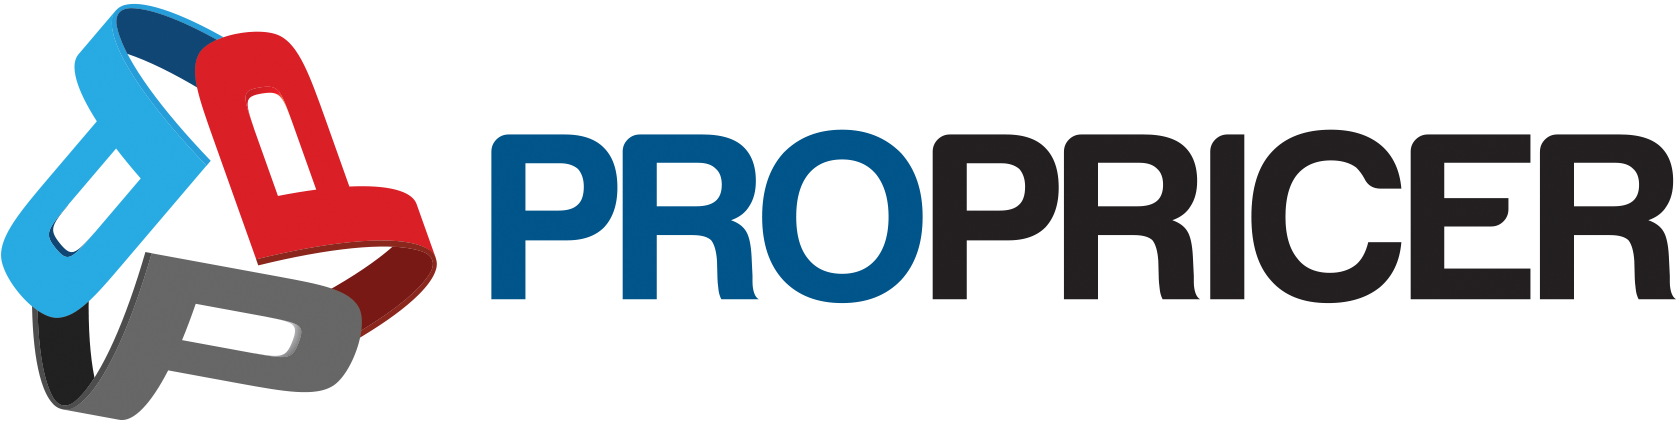 PROPRICER™ (An Executive Business Services, Inc. Product Suite)